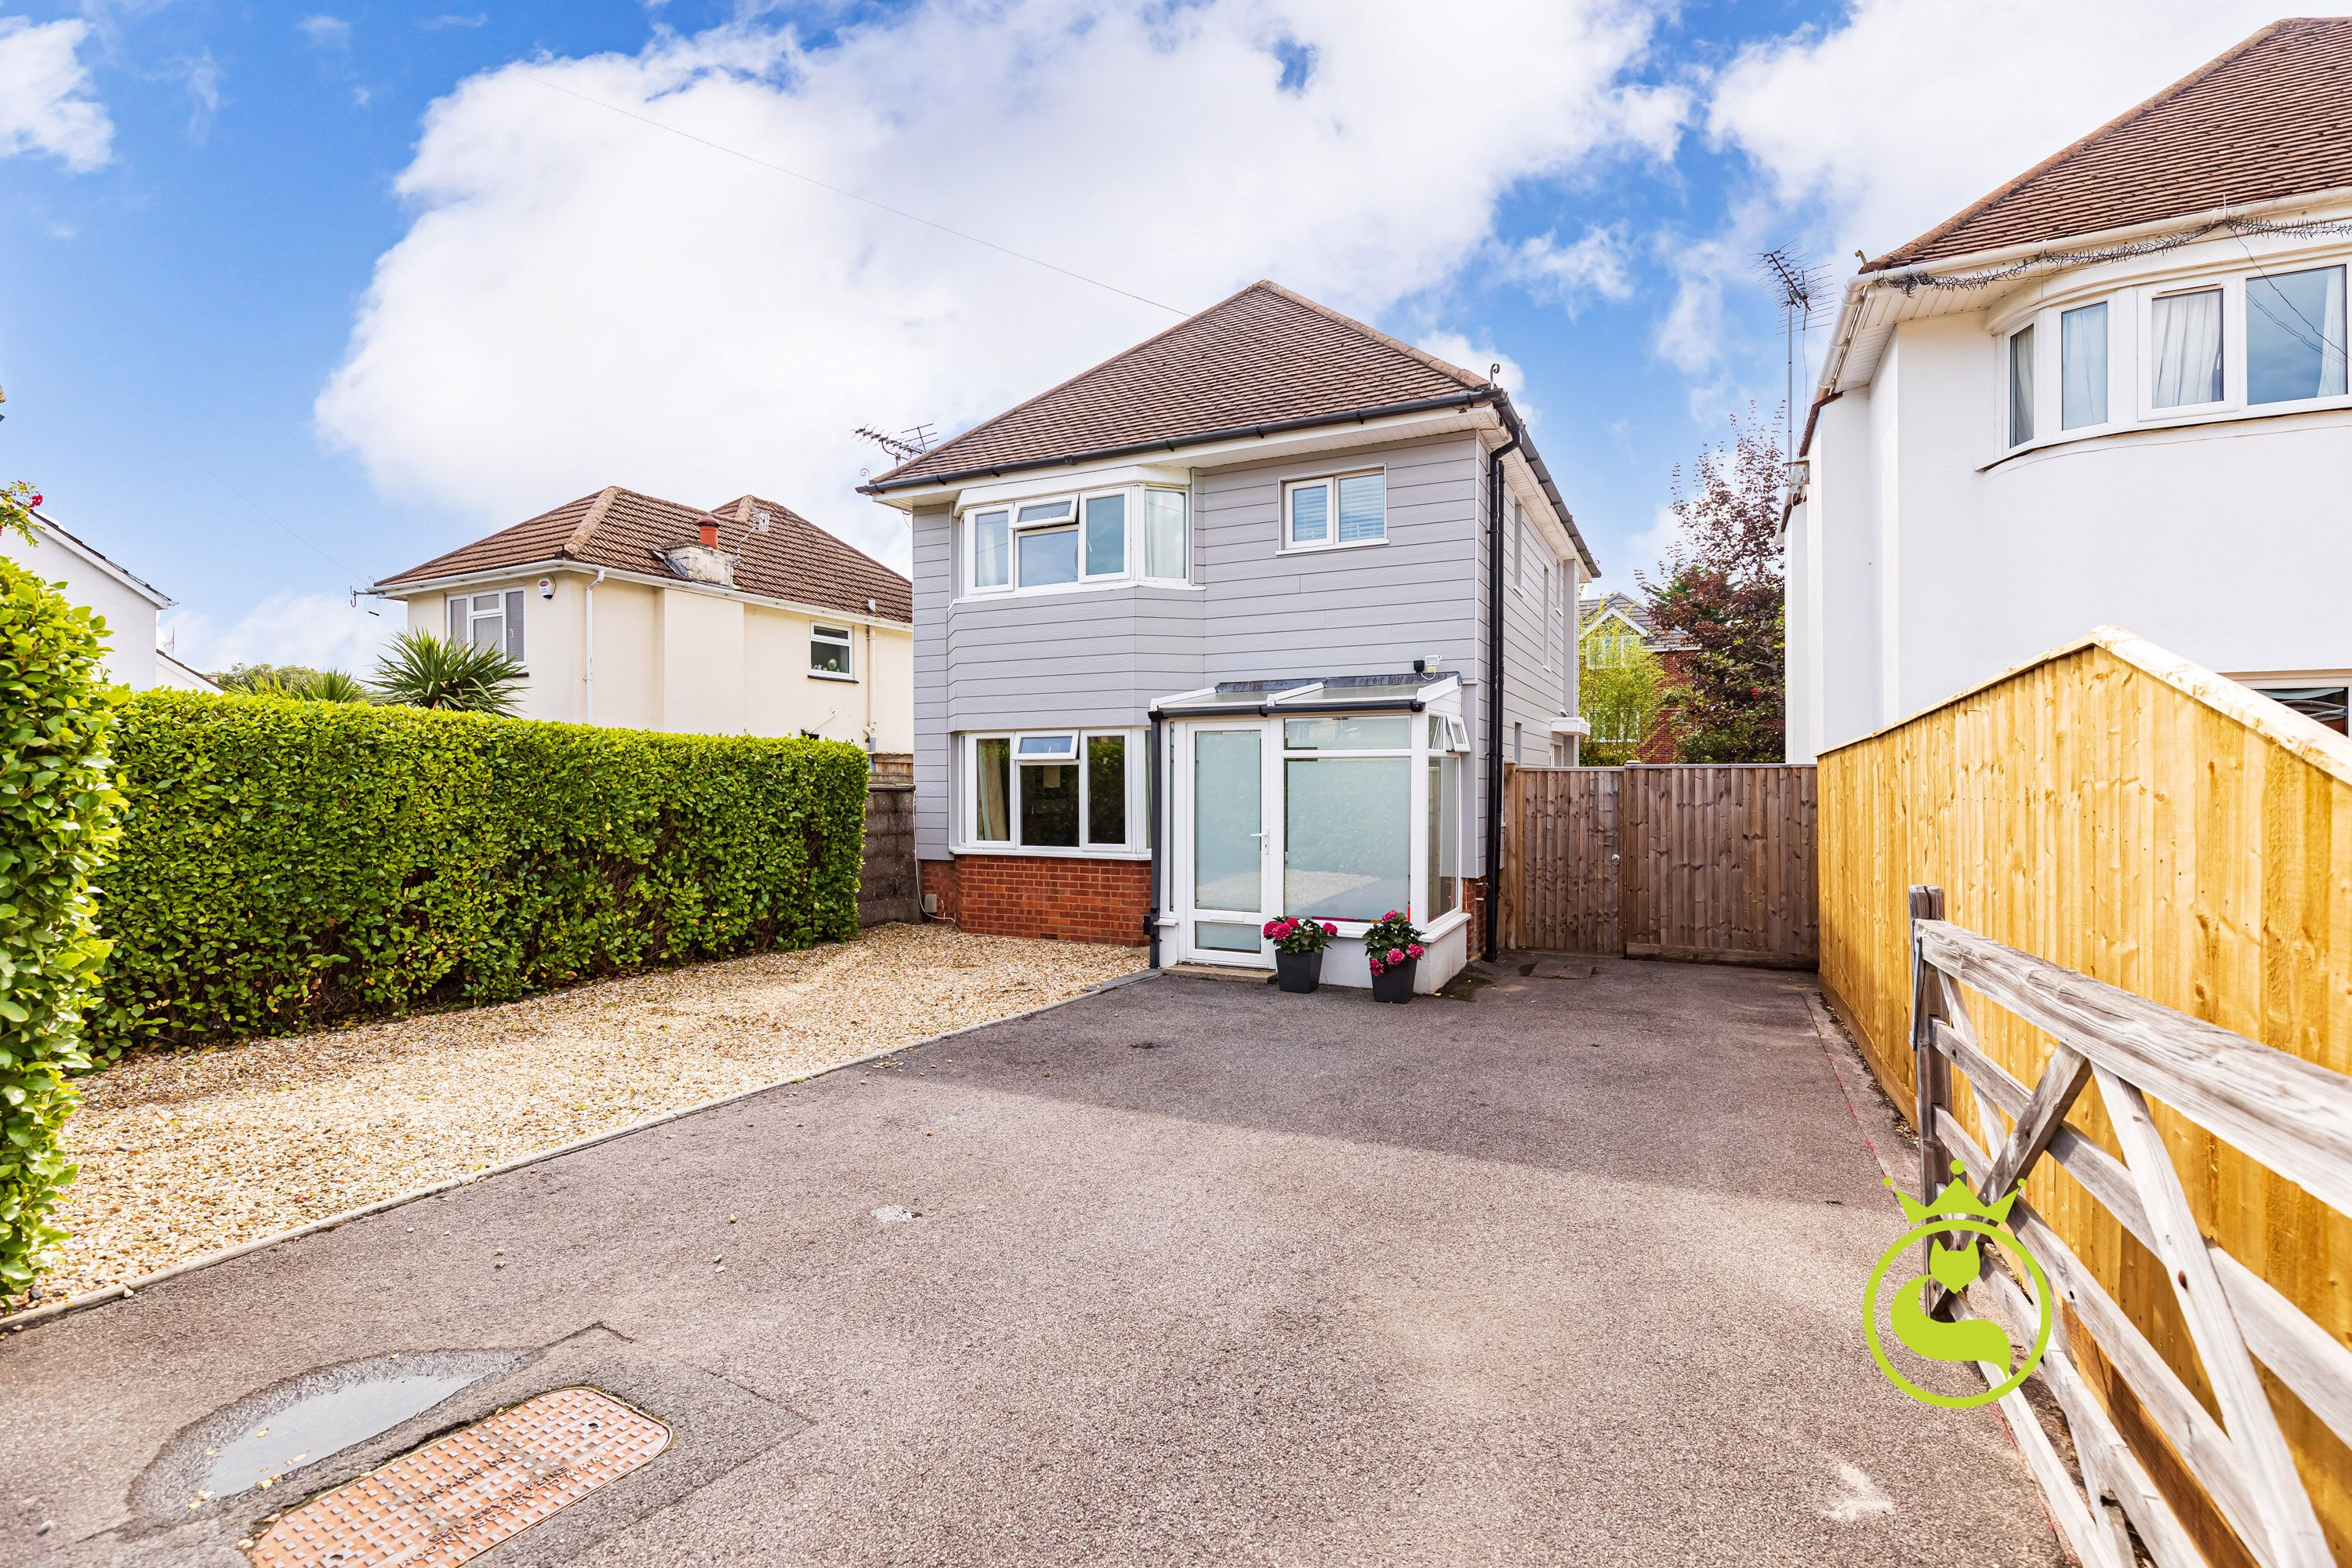 A rare chance to acquire this modernised 1930's three bedroom detached house in the heart of Ashley Cross. Just minutes walk to the amenities and nearby to the town centre.